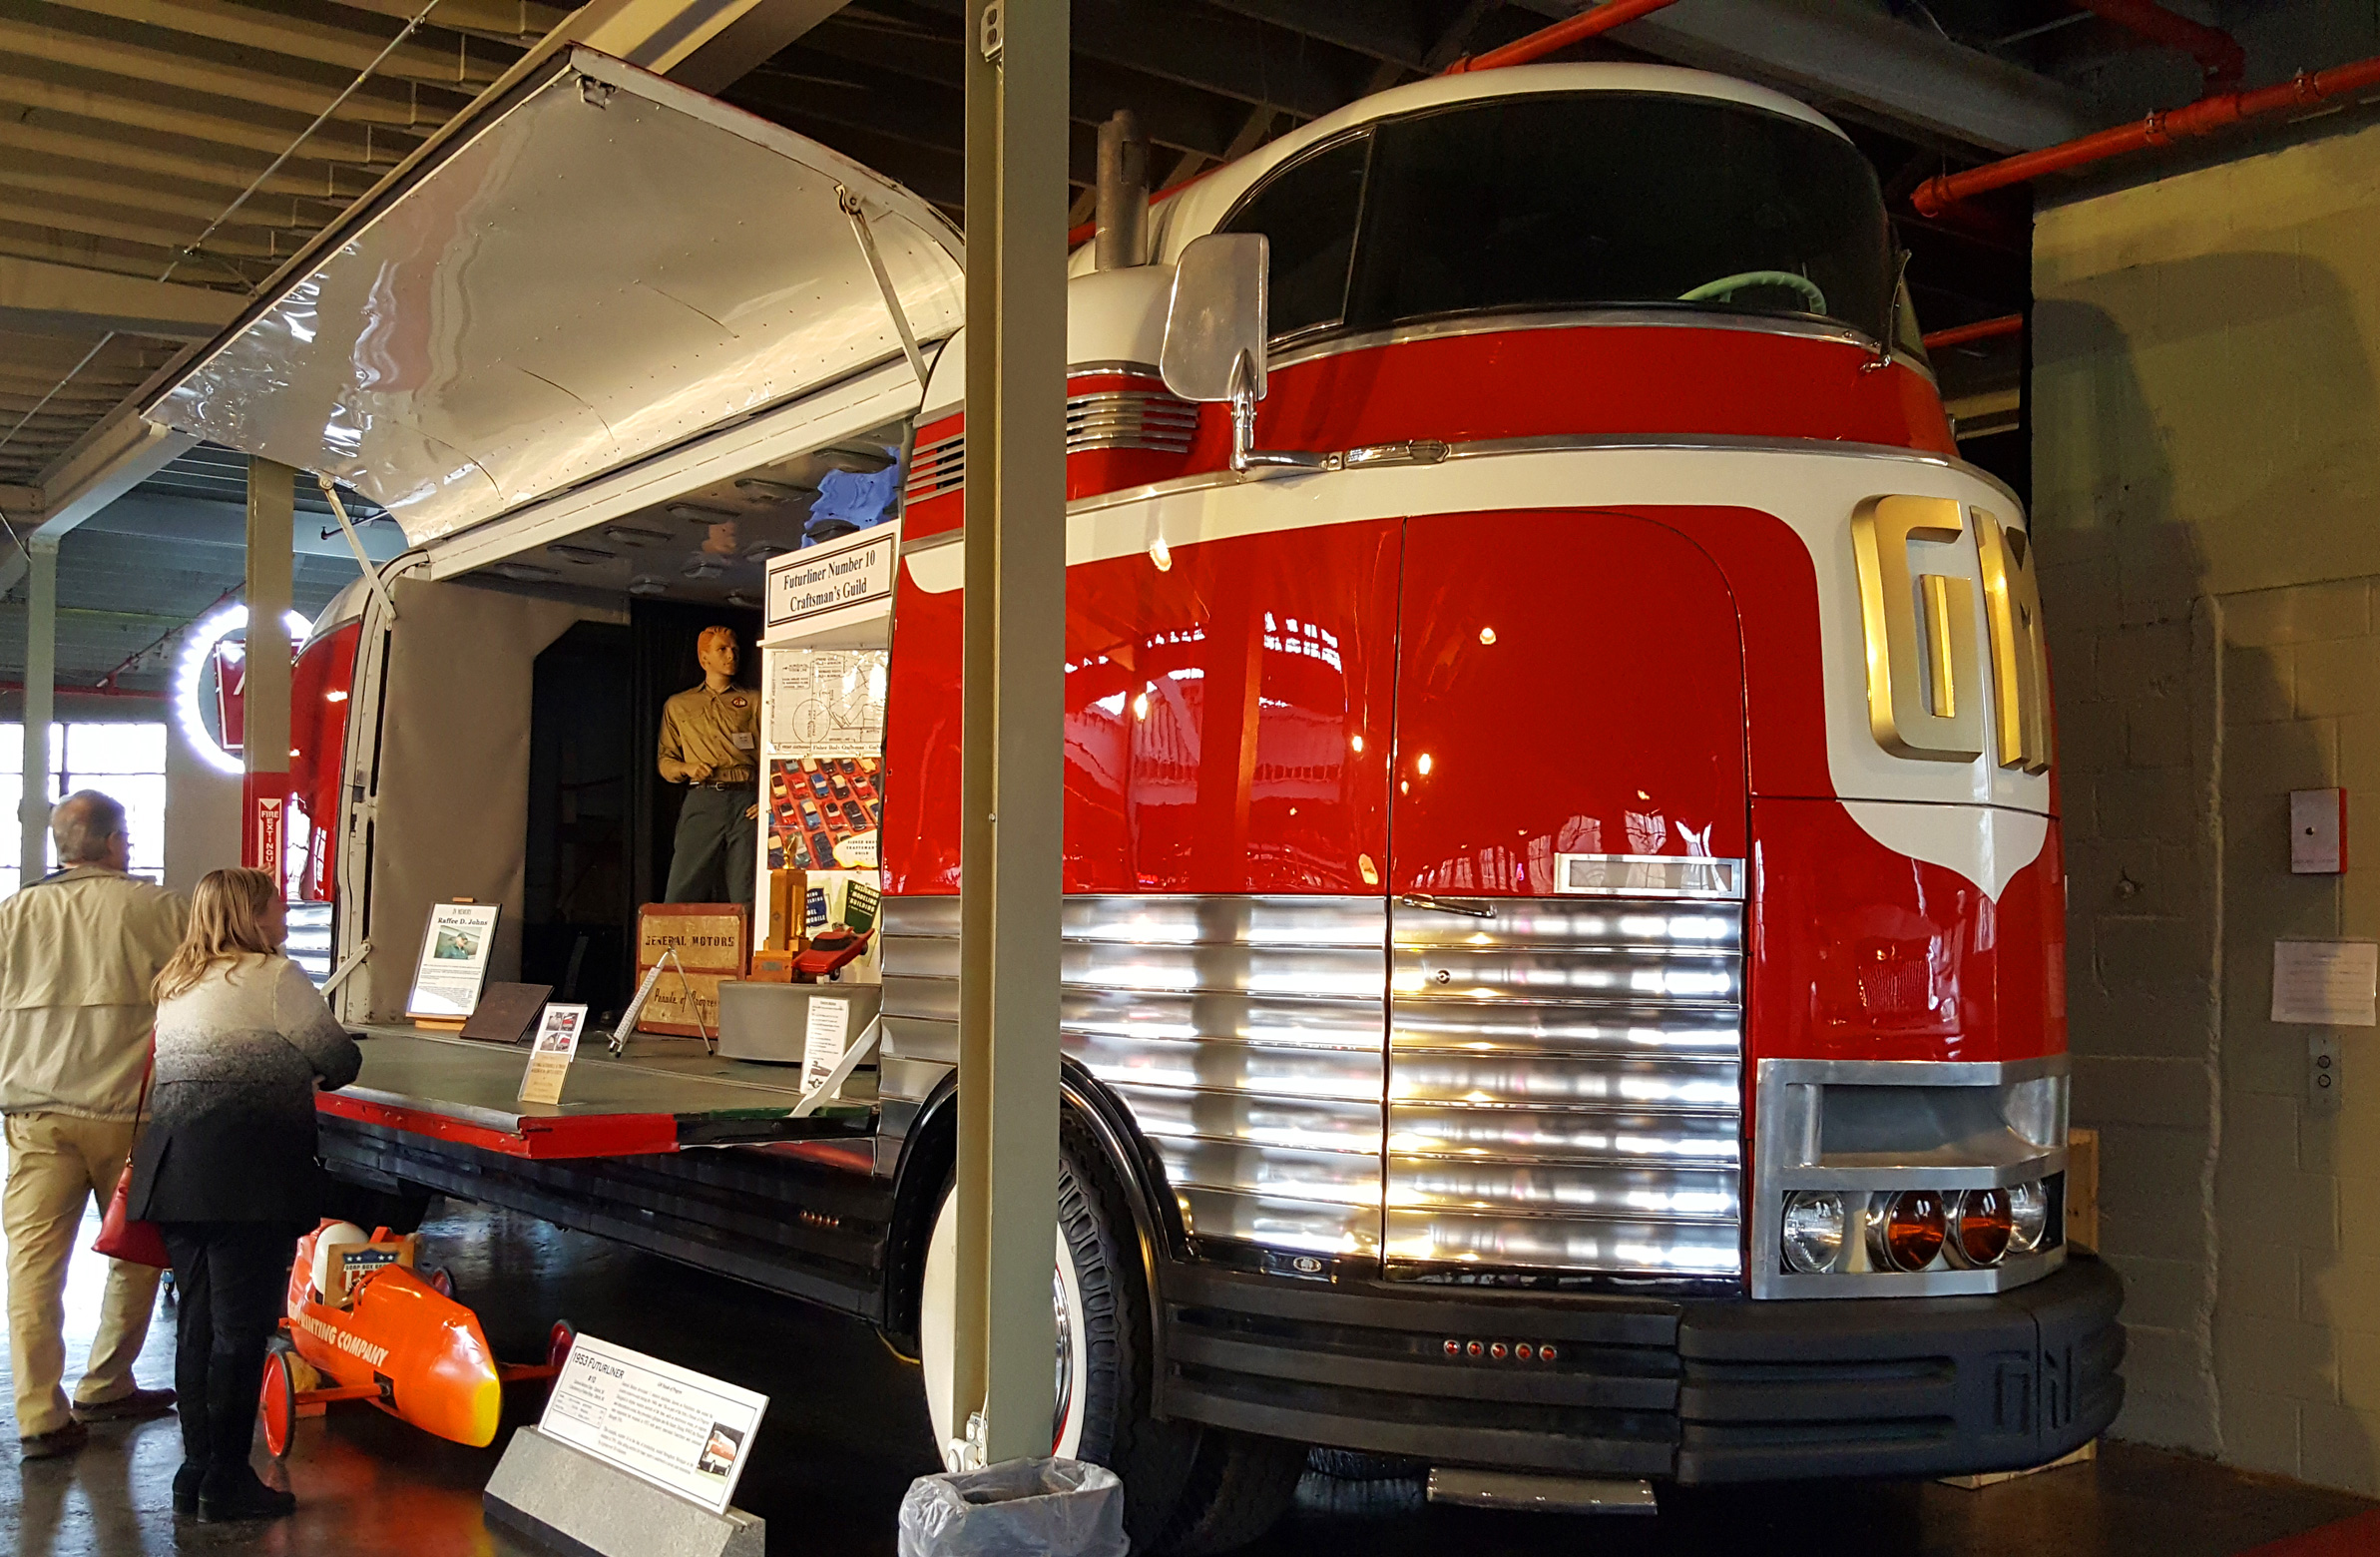 GM Futurliner no. 10